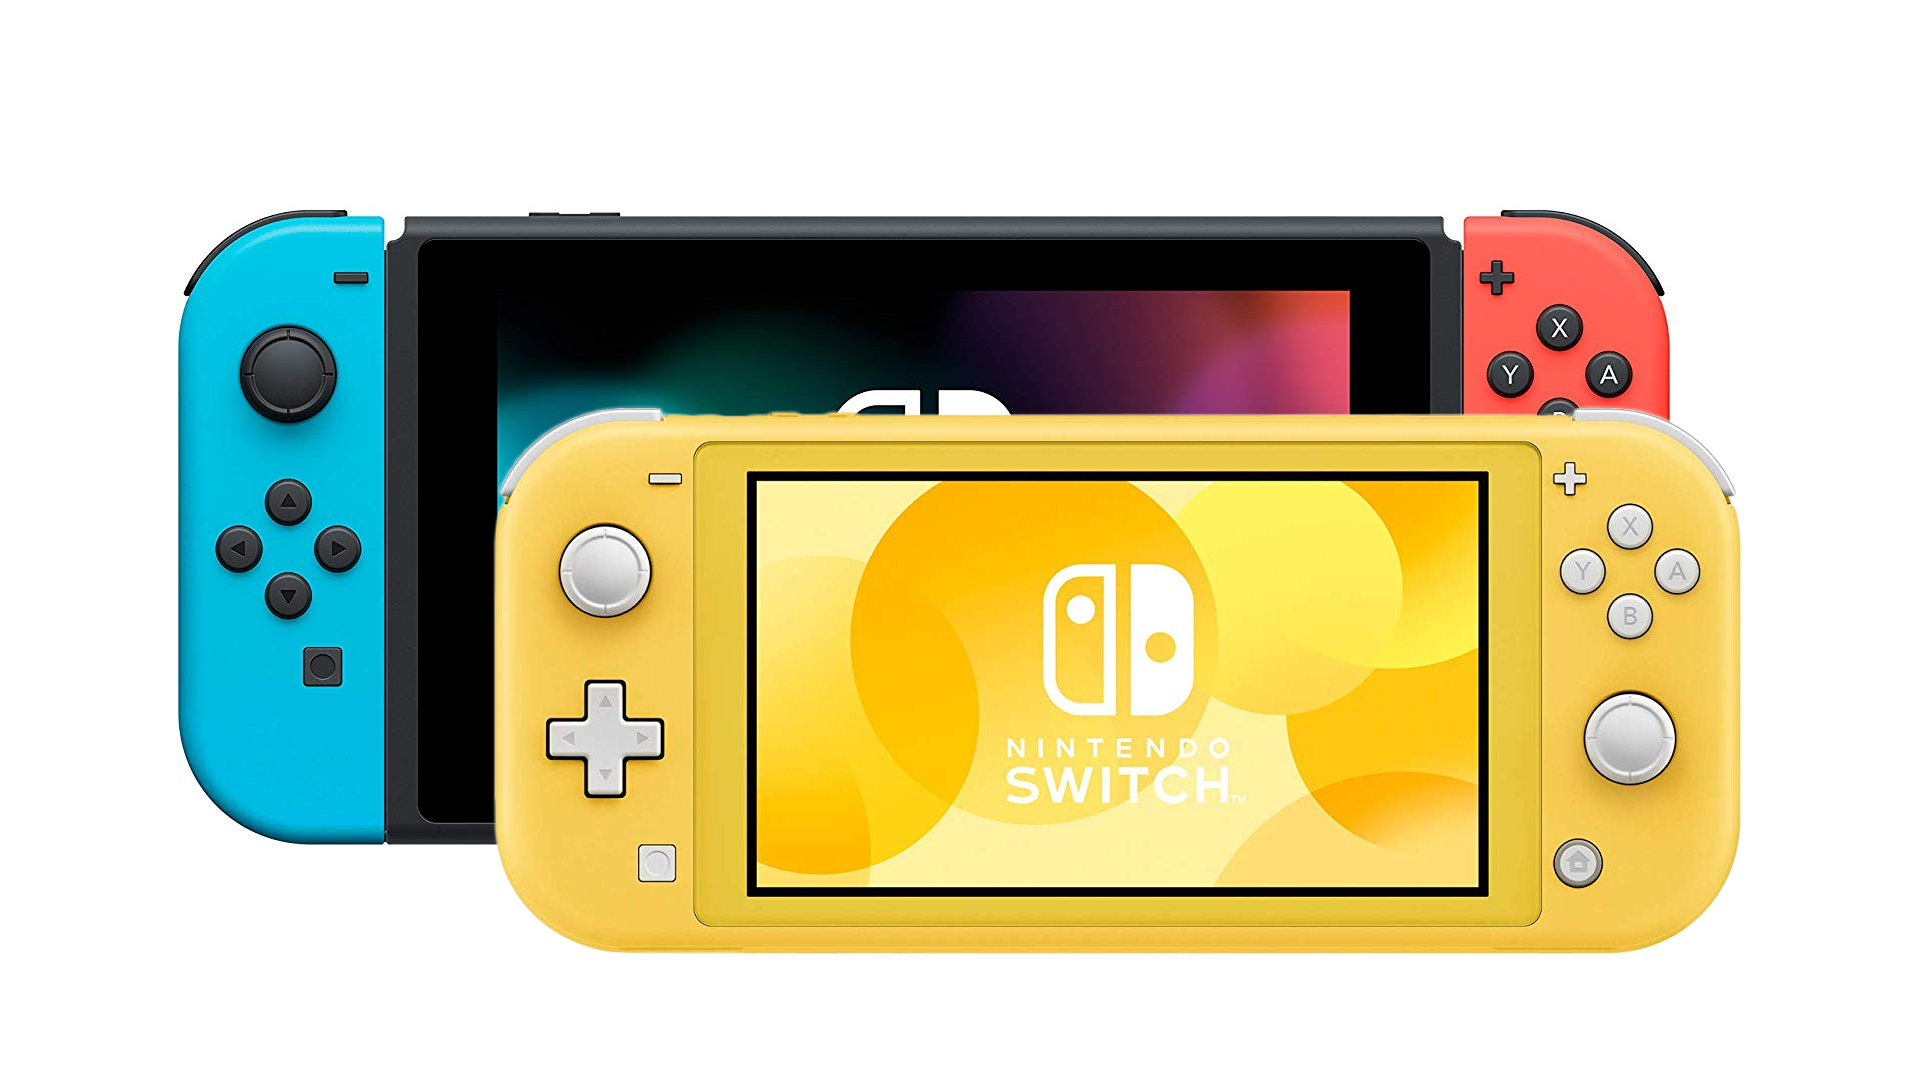 The Nintendo Switch and Nintendo Switch Lite